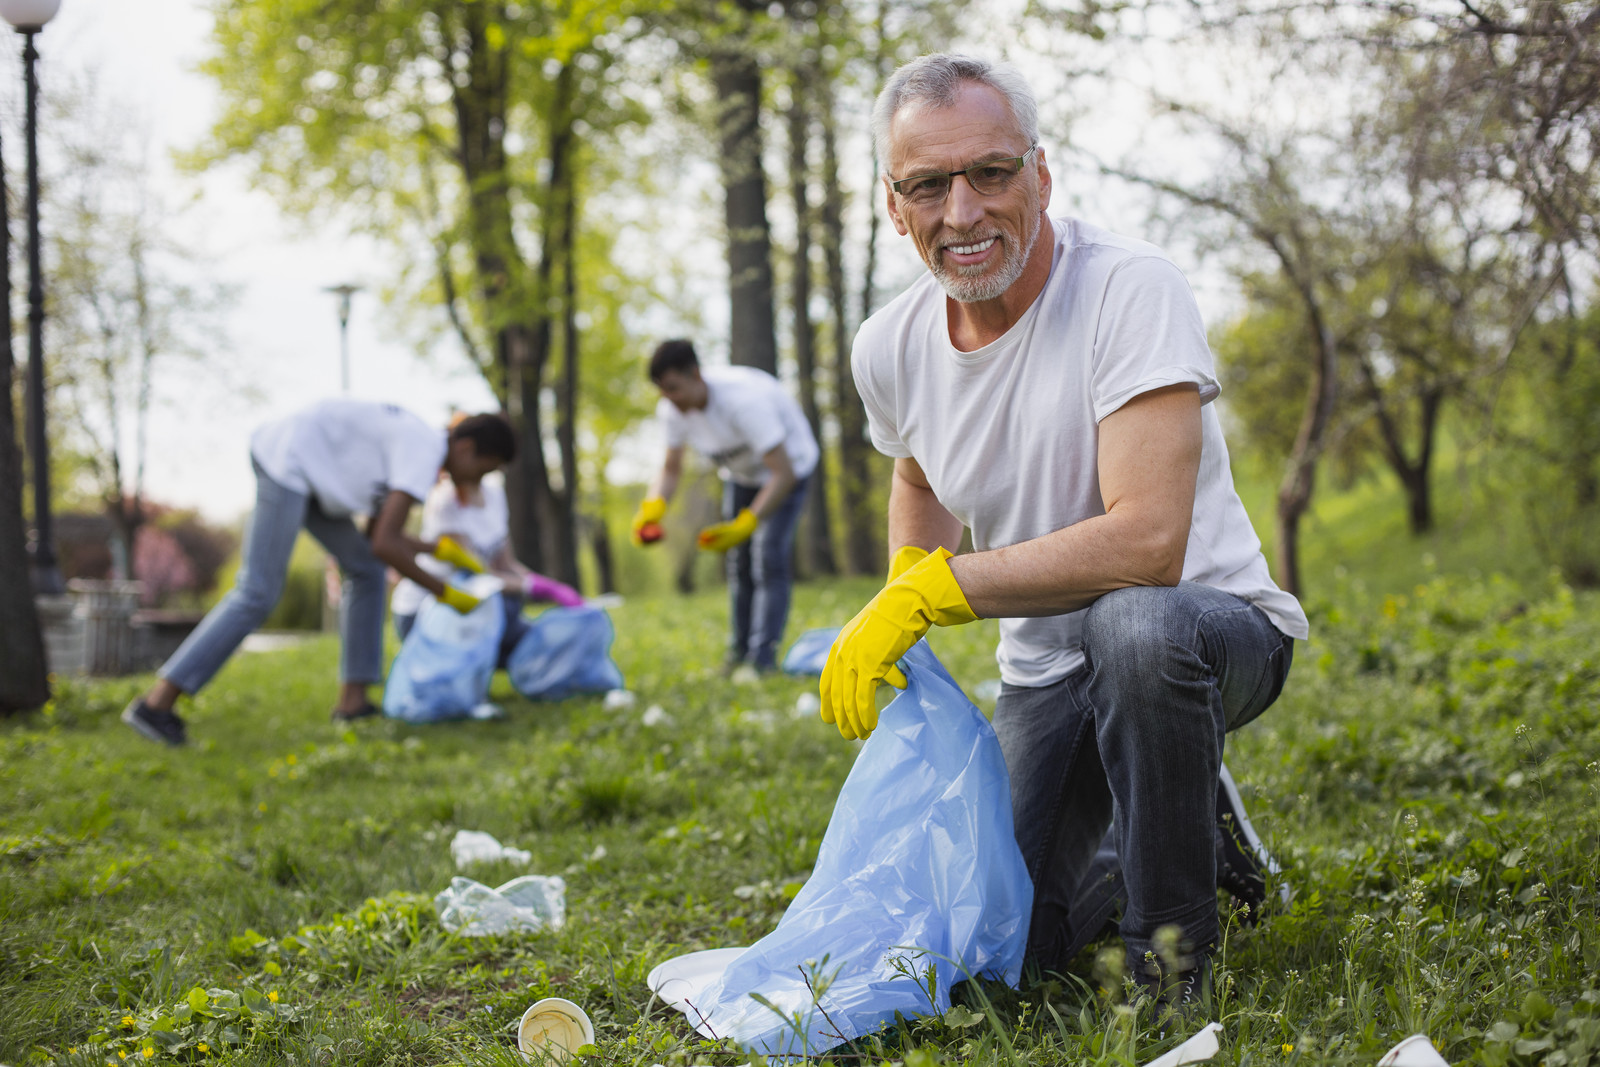 Senior man smiling looking into the camera as he picks up trash with other volunteers